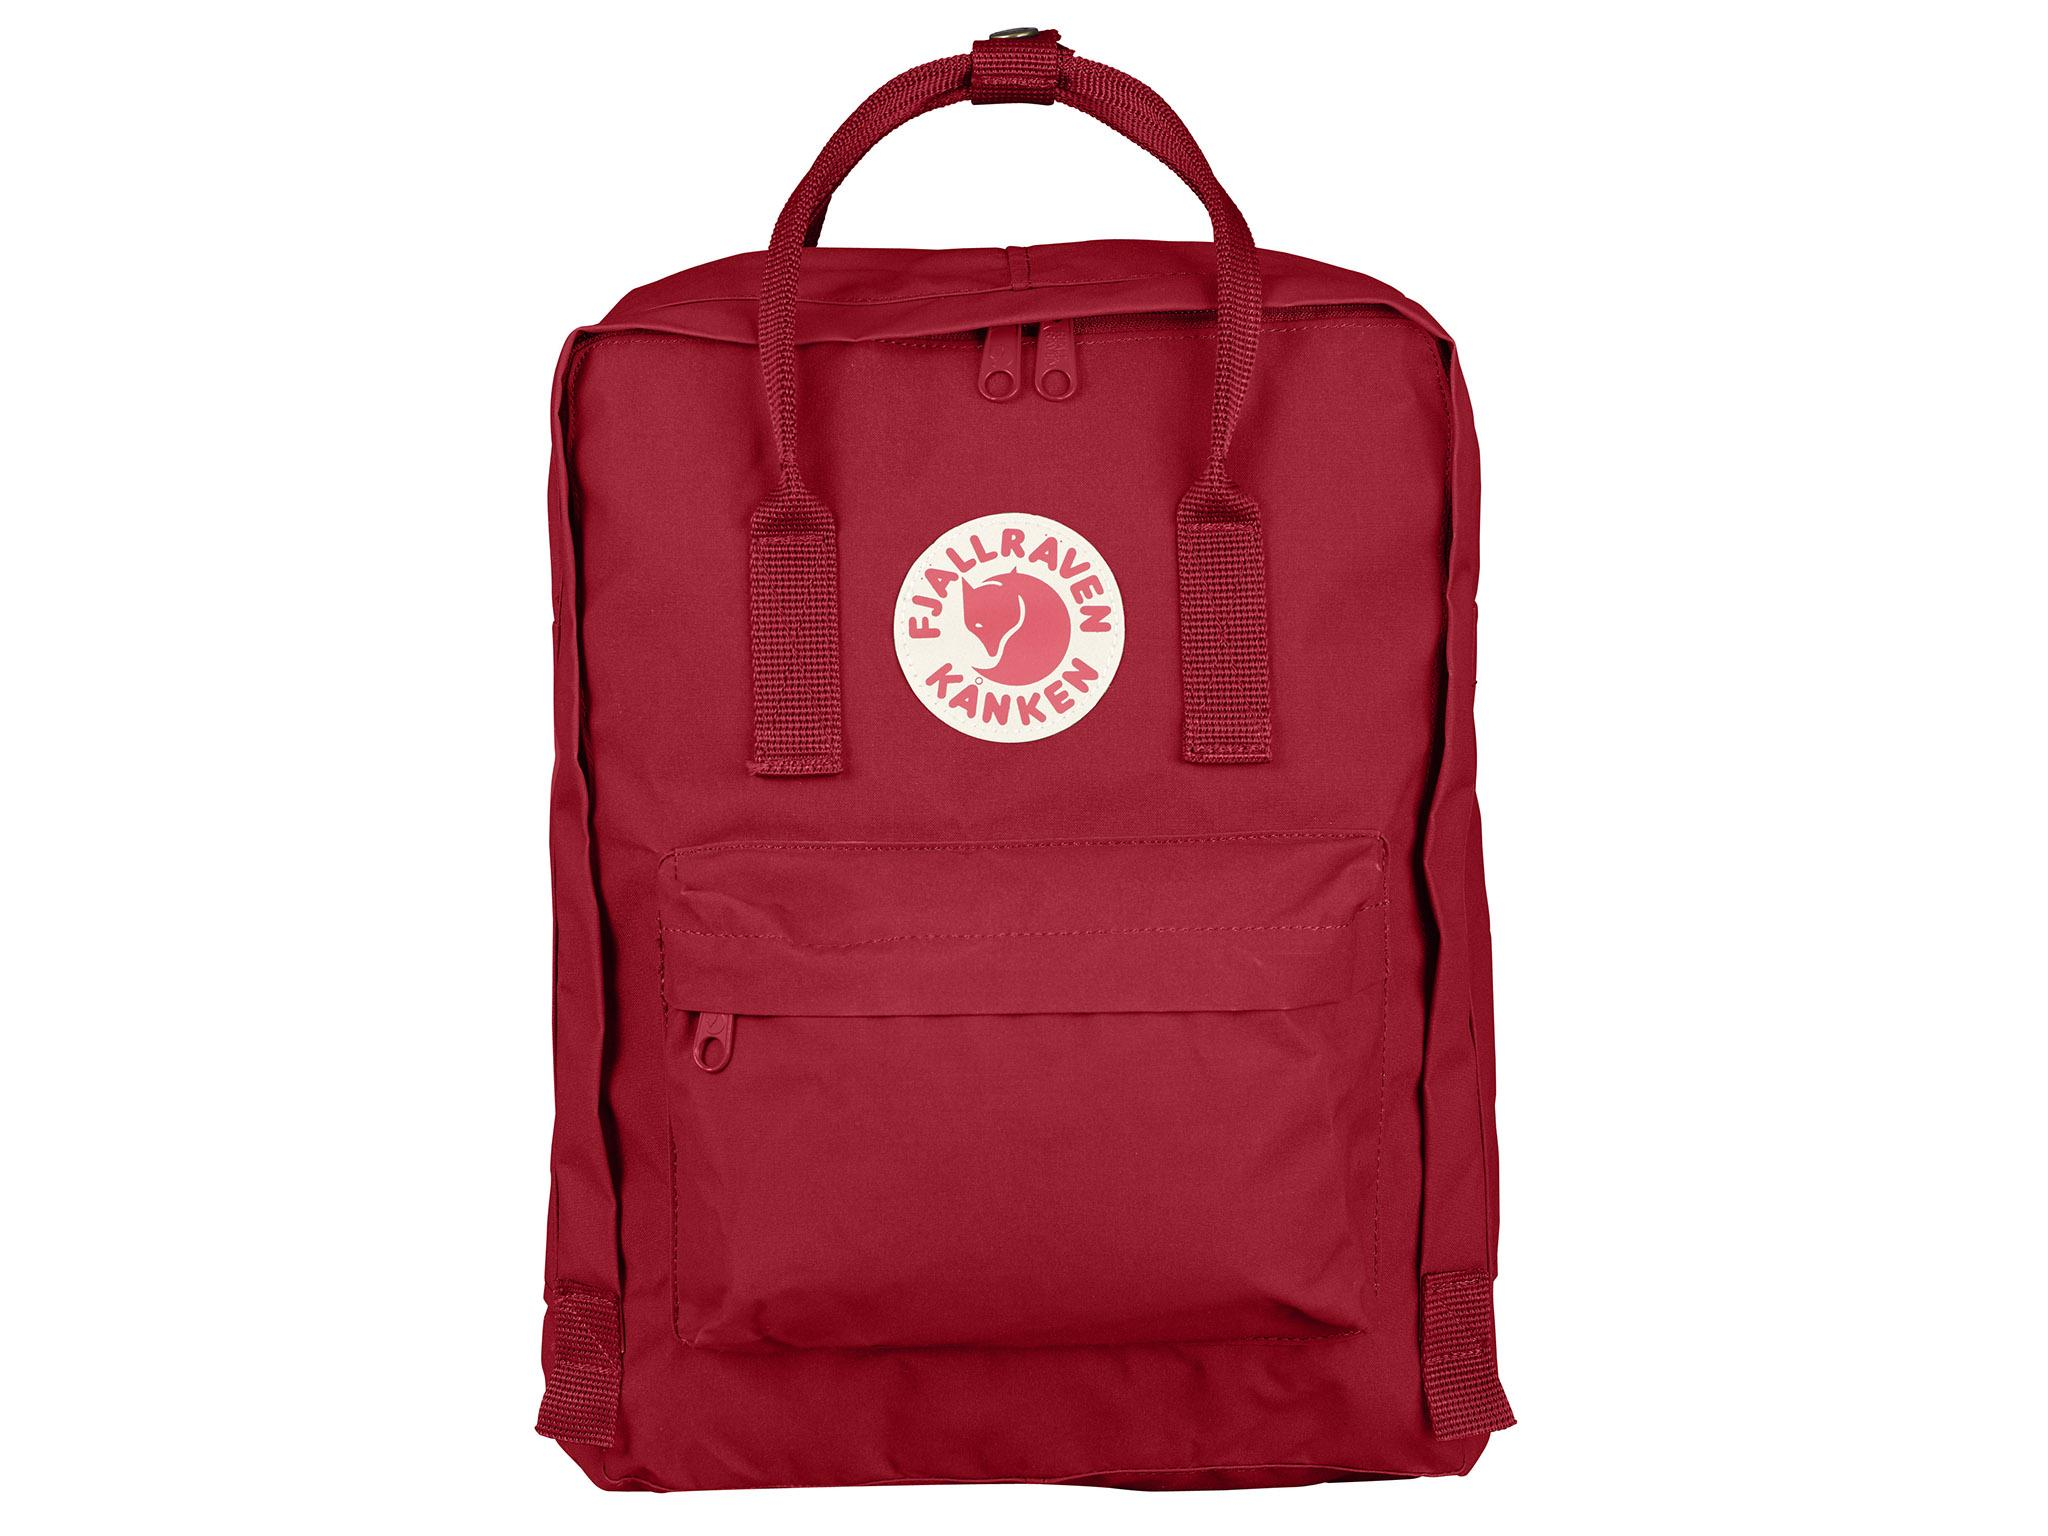 c0d57a462134 9 best school bags | The Independent